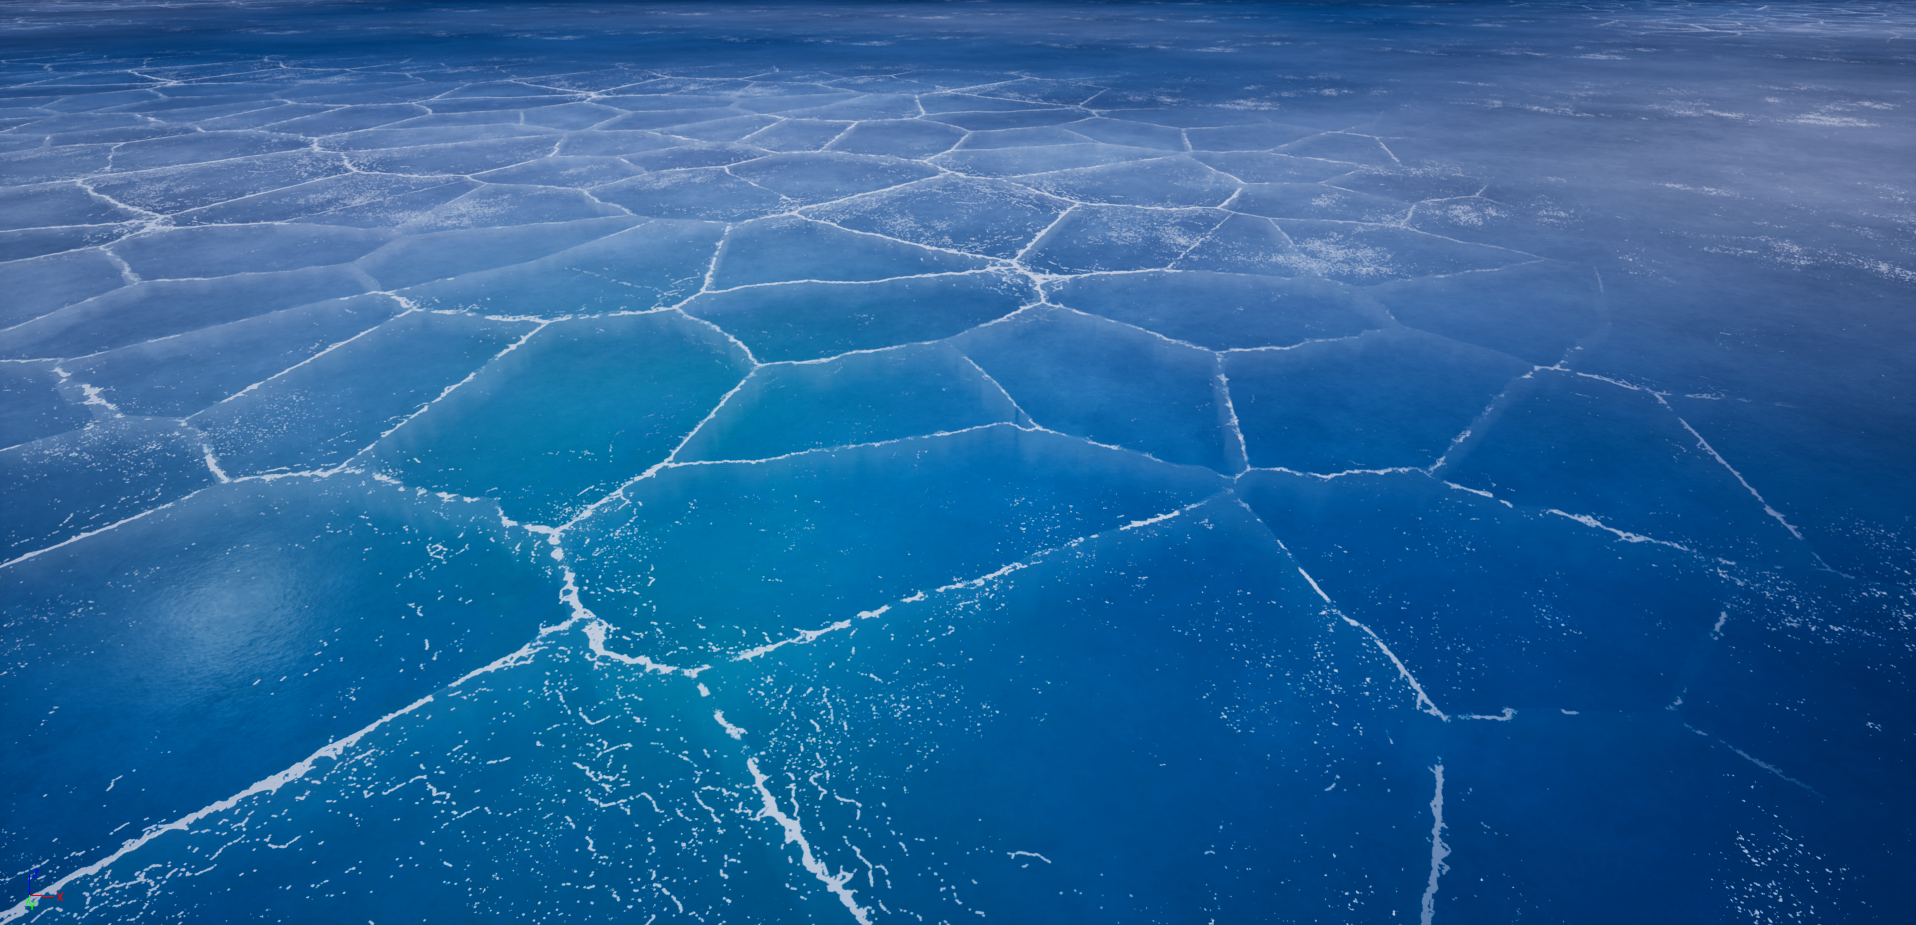 UE4] Been working on an ice shader